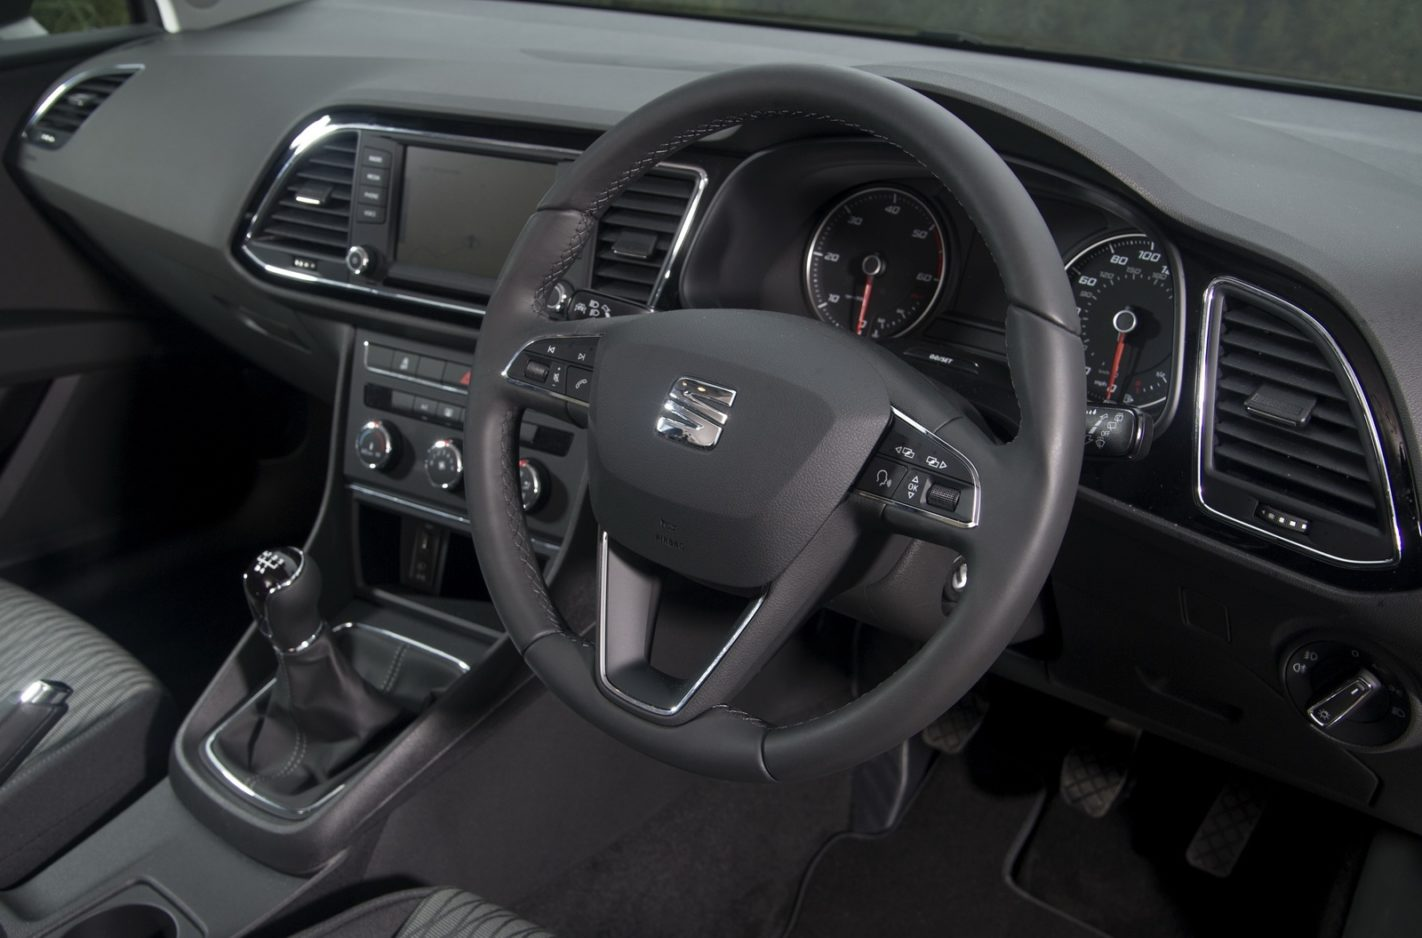 2019 SEAT Leon Interior HD Wallpaper Auto Car Rumors 1422x938